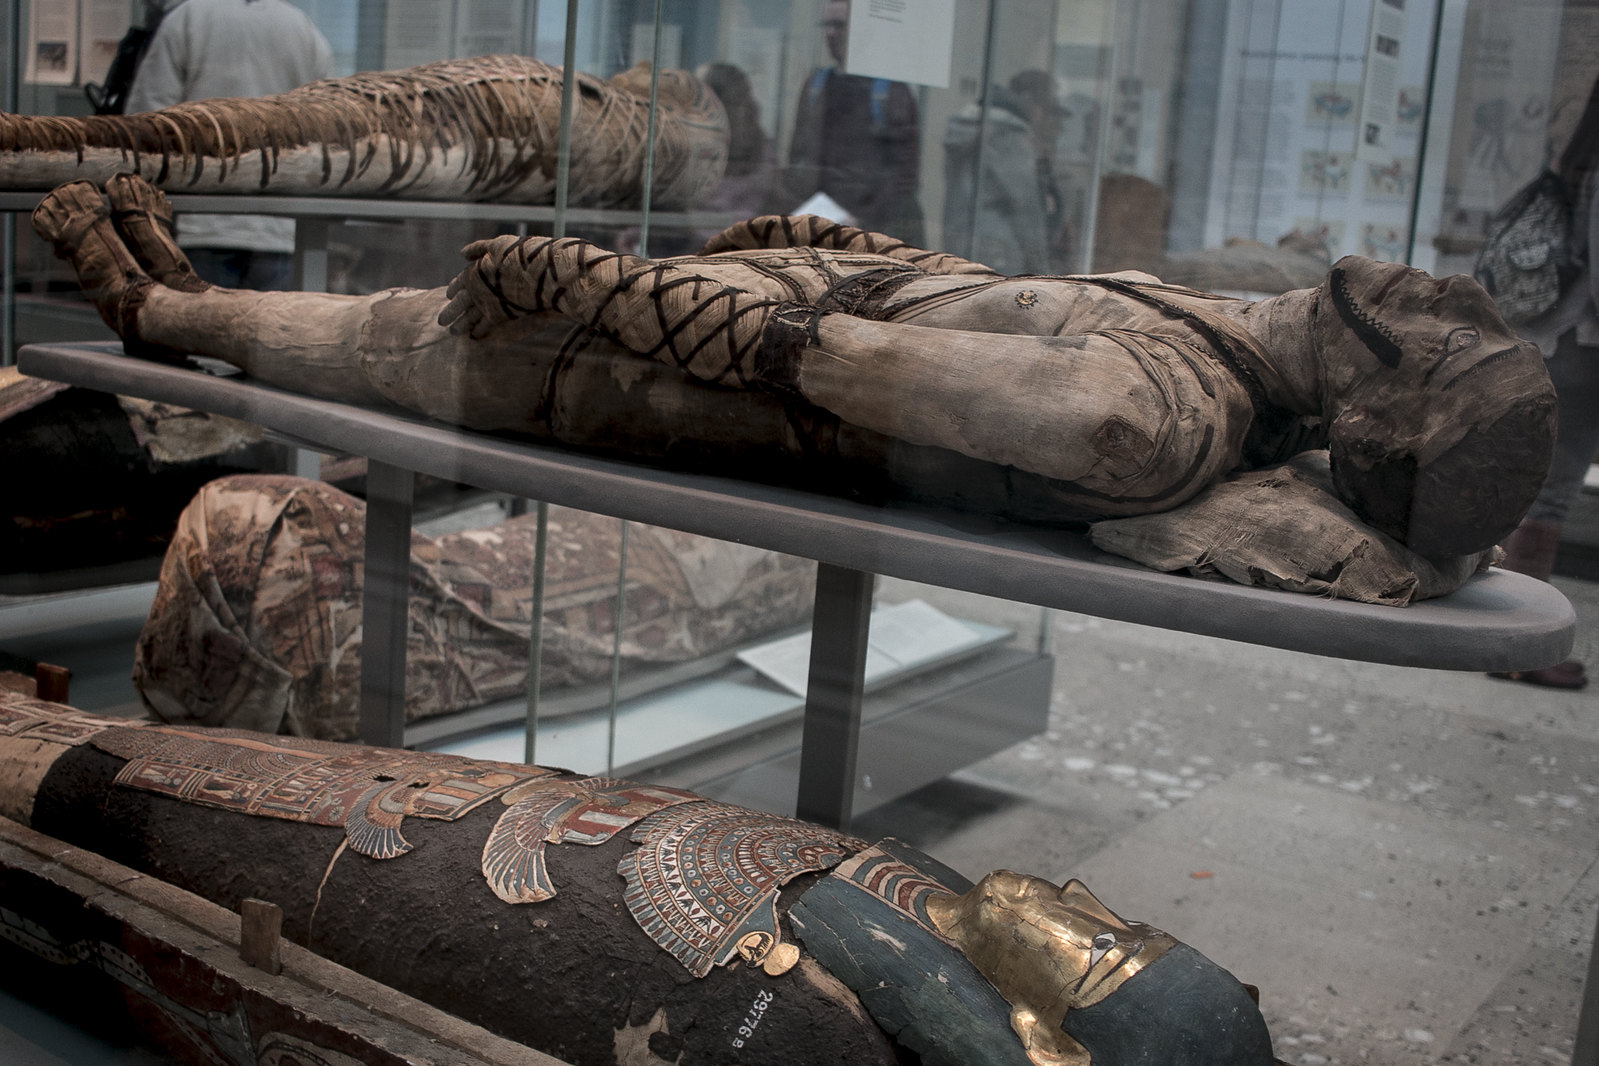 mummies in british museum, mummy, egyptian mummy, british museum